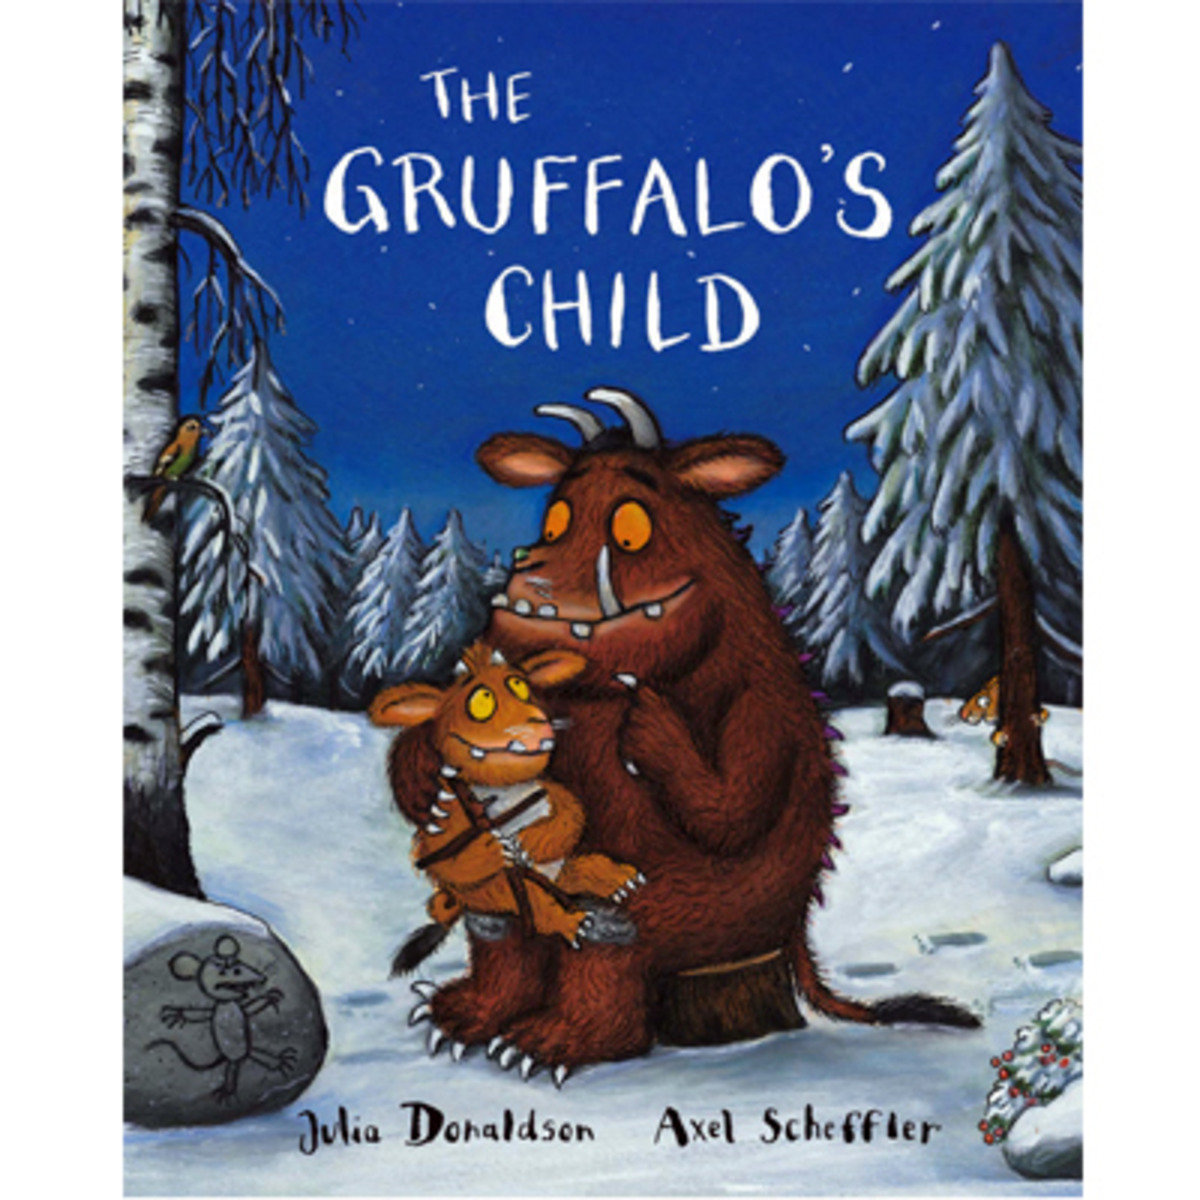 THE GRUFFALO'S CHILD 9781405020466